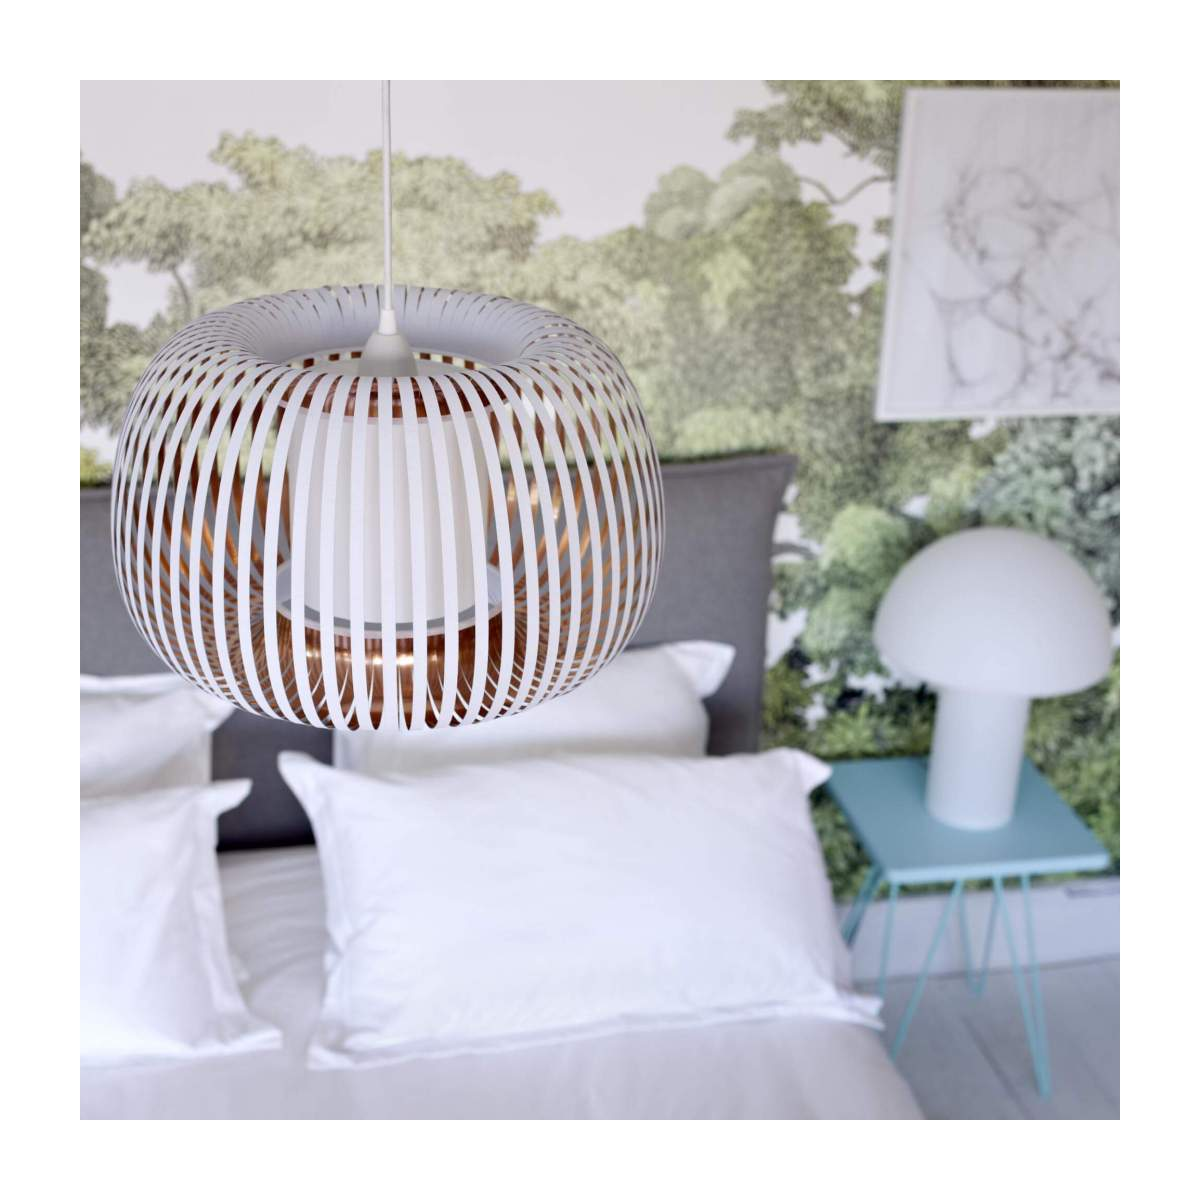 Ceiling lamp in PVC, white and copper n°6